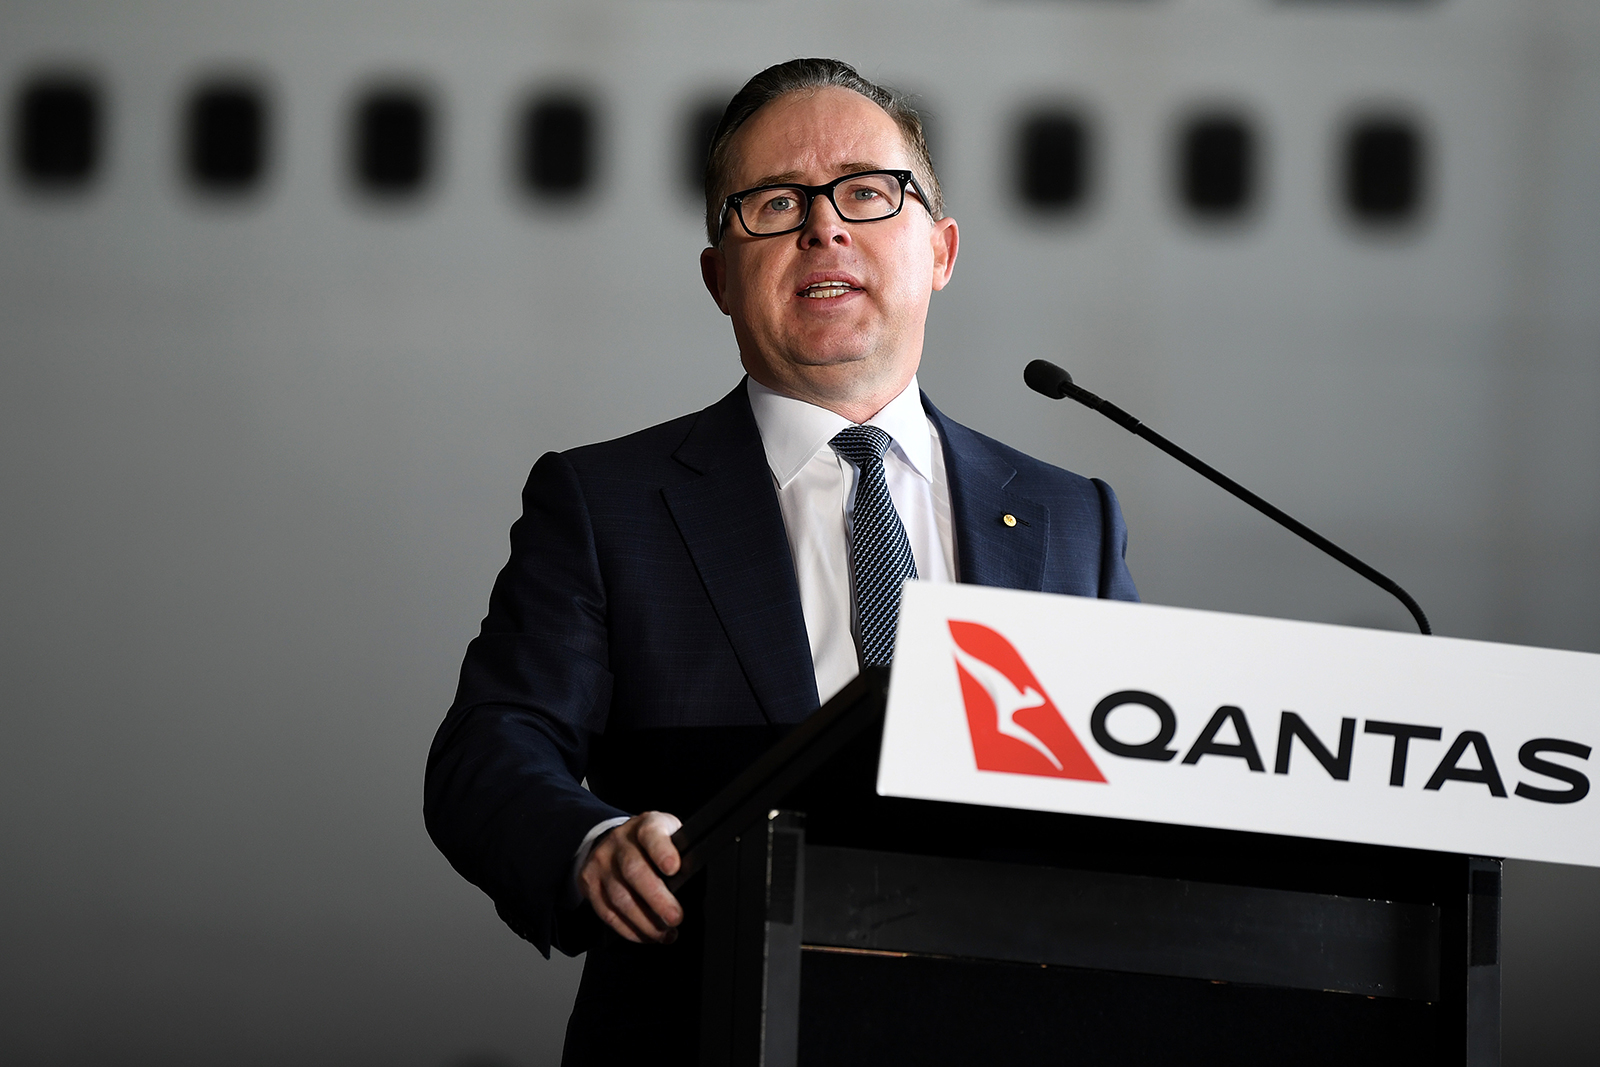 Qantas CEO Alan Joyce speaks during an official farewell event for the Qantas 747 fleet at Sydney Airport in Sydney, on July 22.